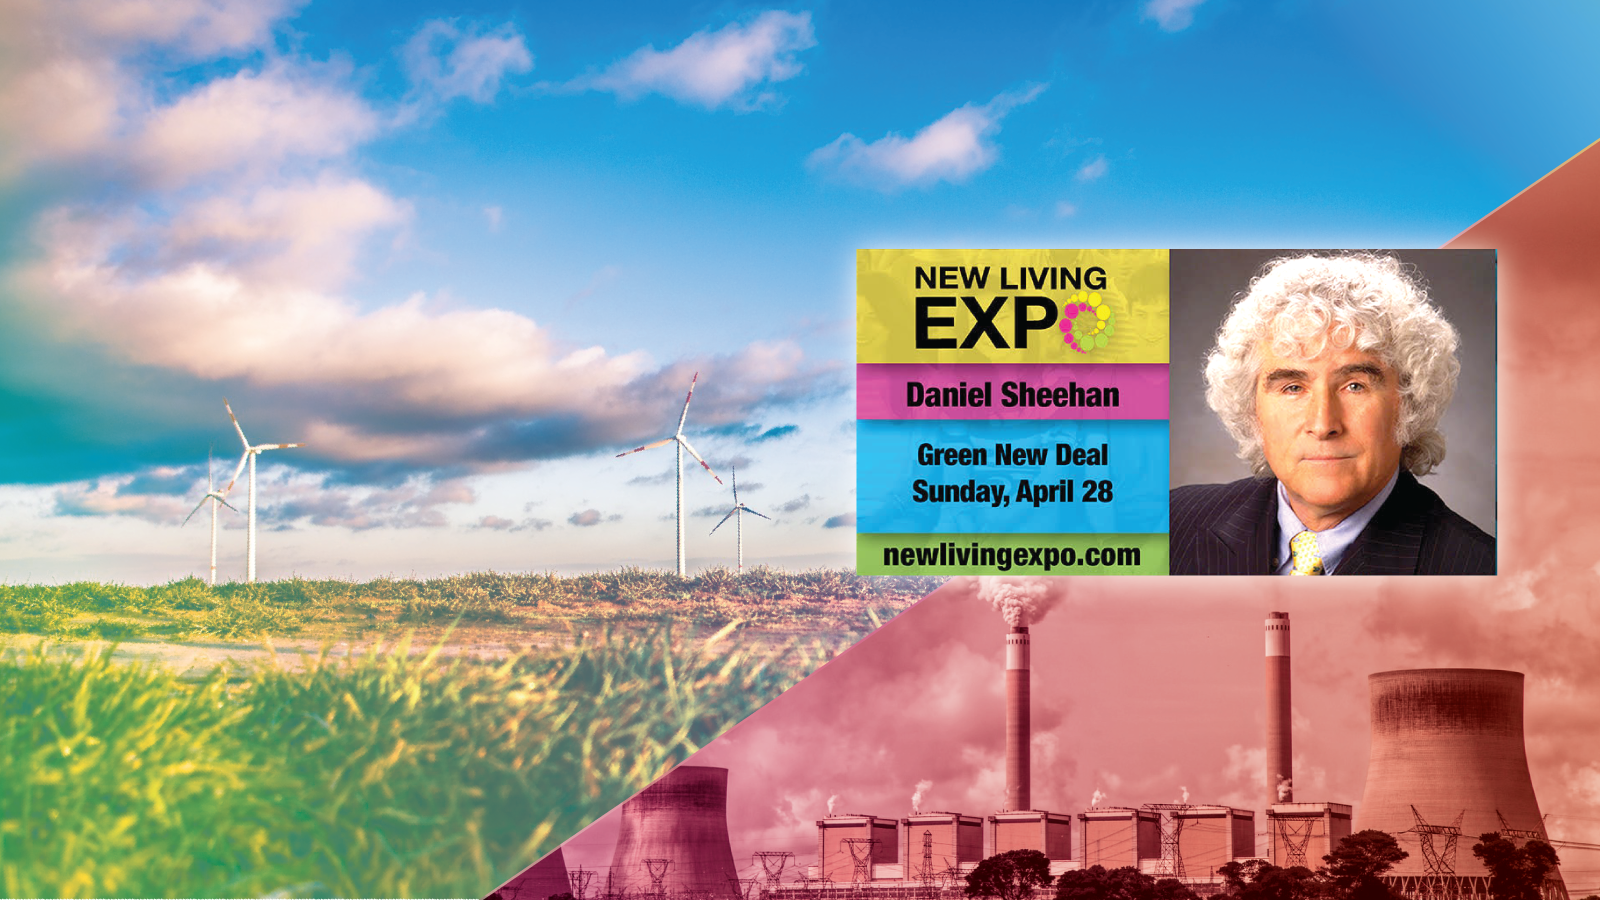 Meet Danny at the 2019 New Living Expo